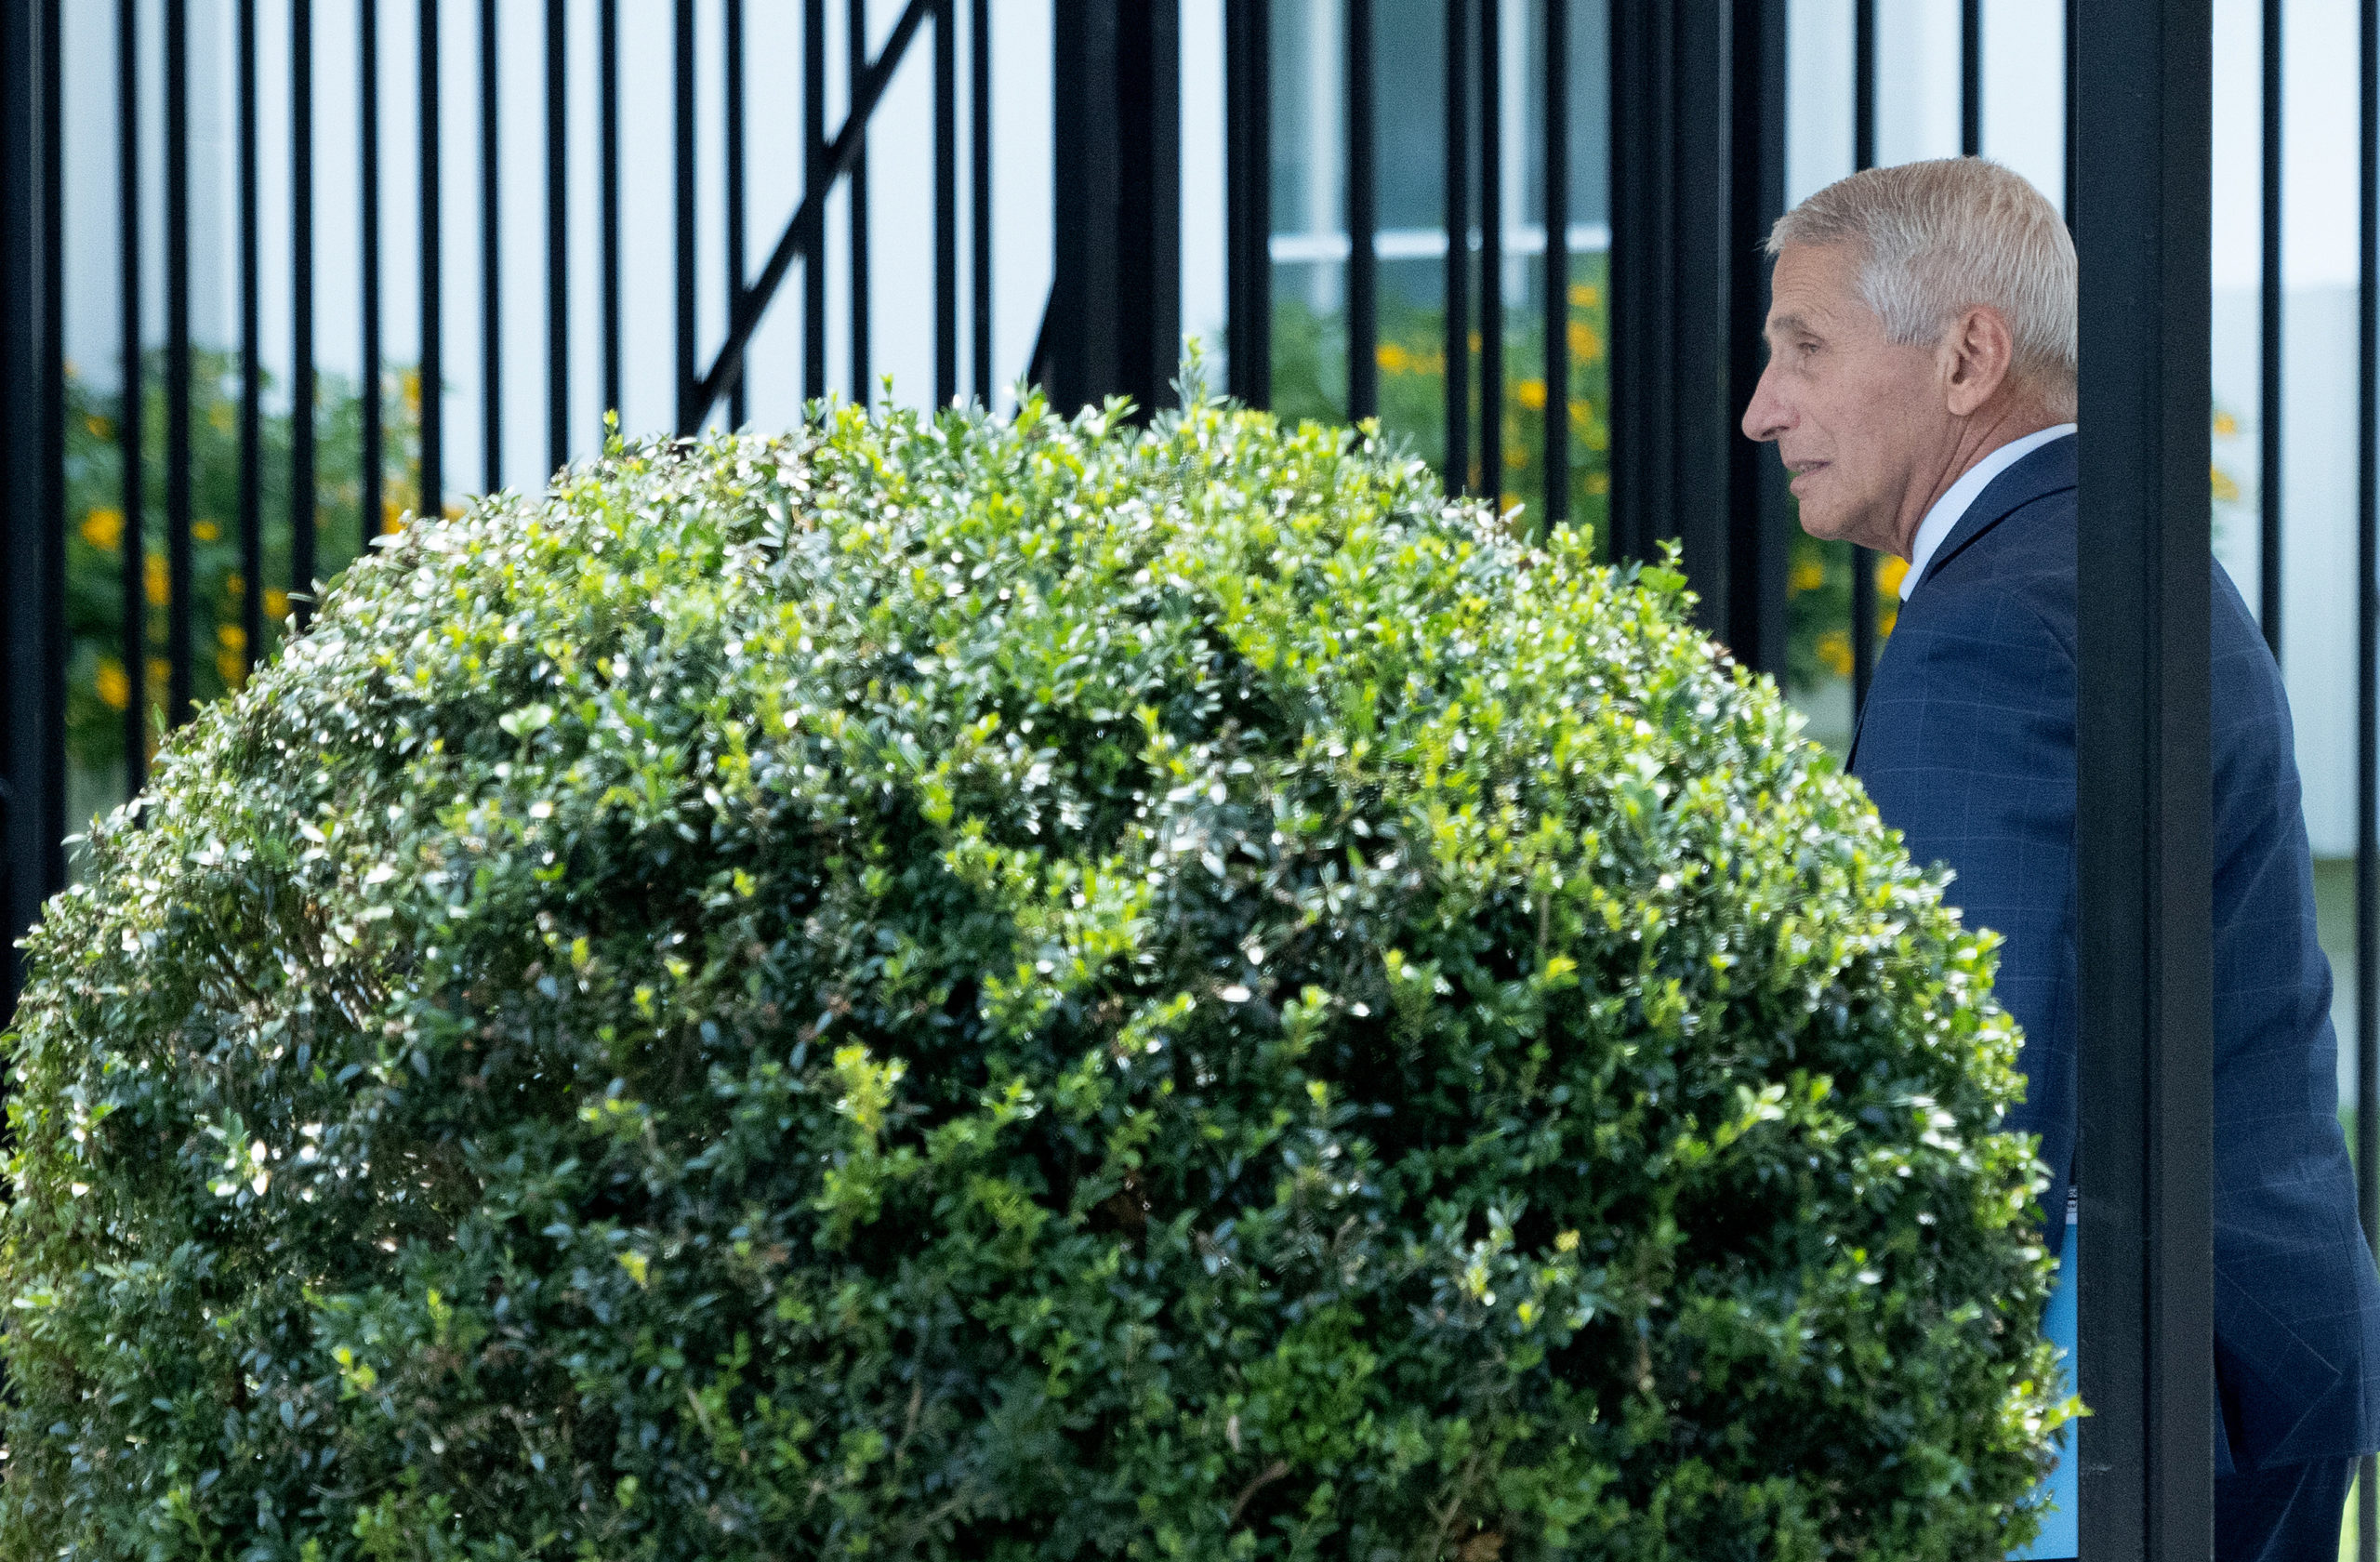 WASHINGTON, DC - JULY 22: Dr. Anthony Fauci, chief medical advisor to the President, arrives at the White House on July 22, 2021 in Washington, DC. The United States continues to see an increase in COVID-19 cases as the Delta variant accounts for a larger share of new cases. (Photo by Win McNamee/Getty Images)